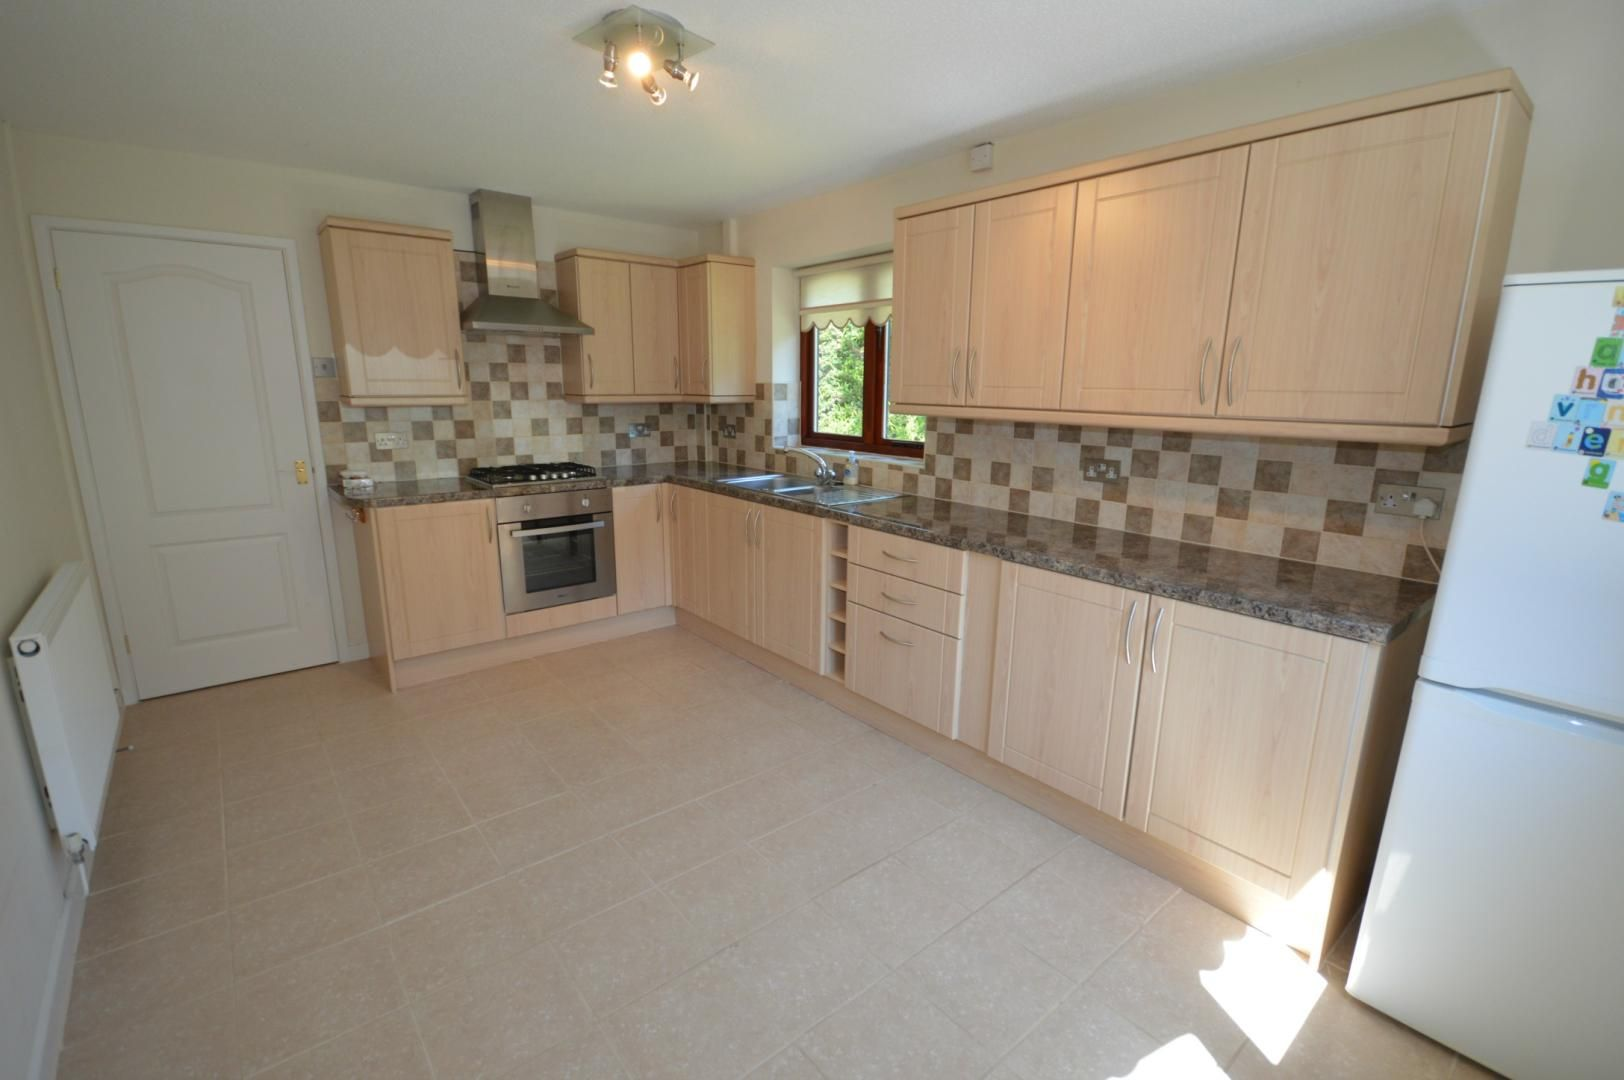 3 bed house to rent 6